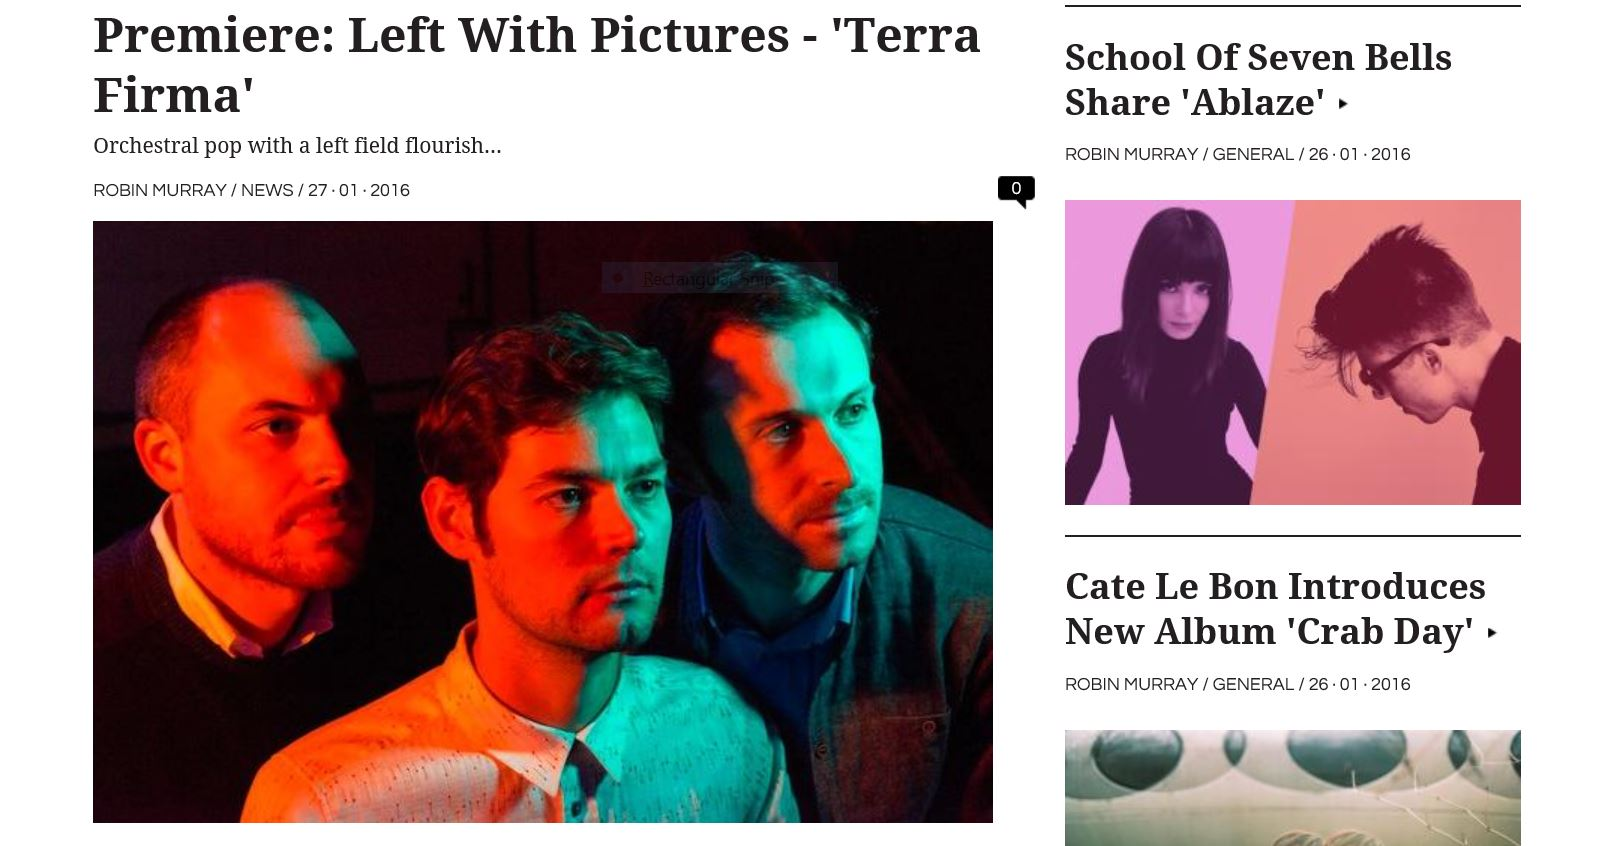 Left With Pictures, Terra Firma, Clash Premiere